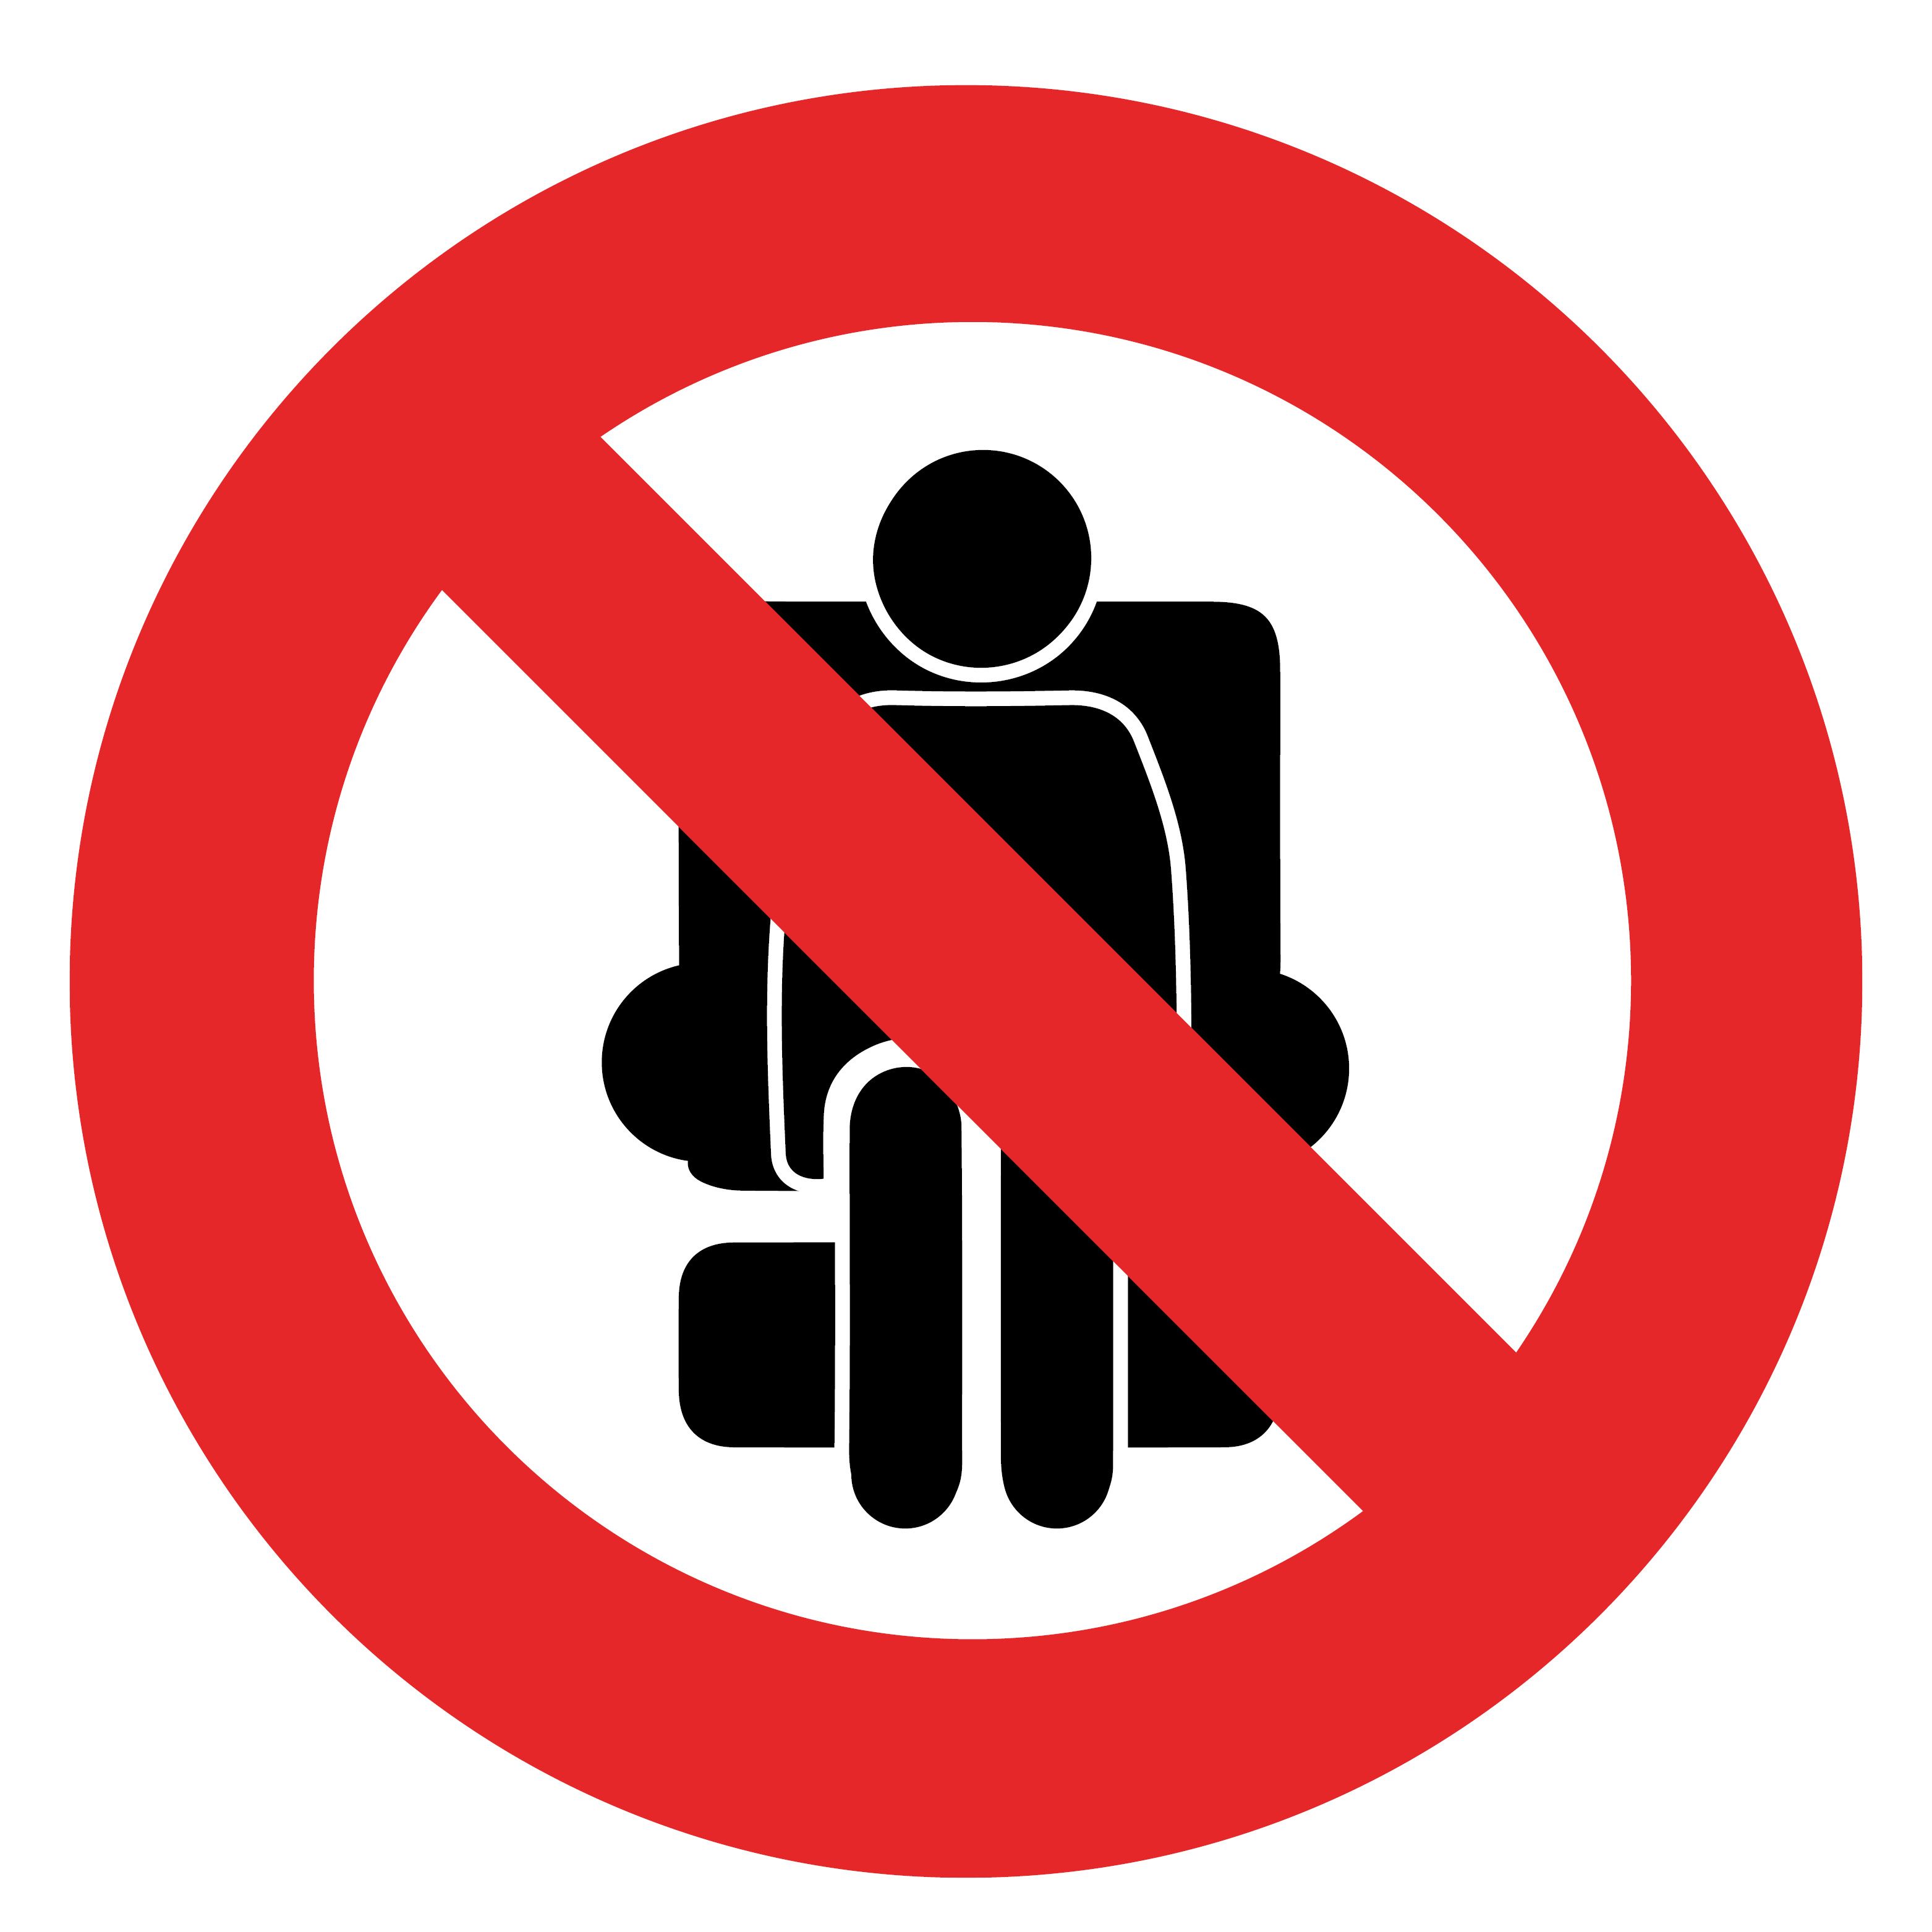 Social Distancing Seat Sticker - Please do not sit here, graphic